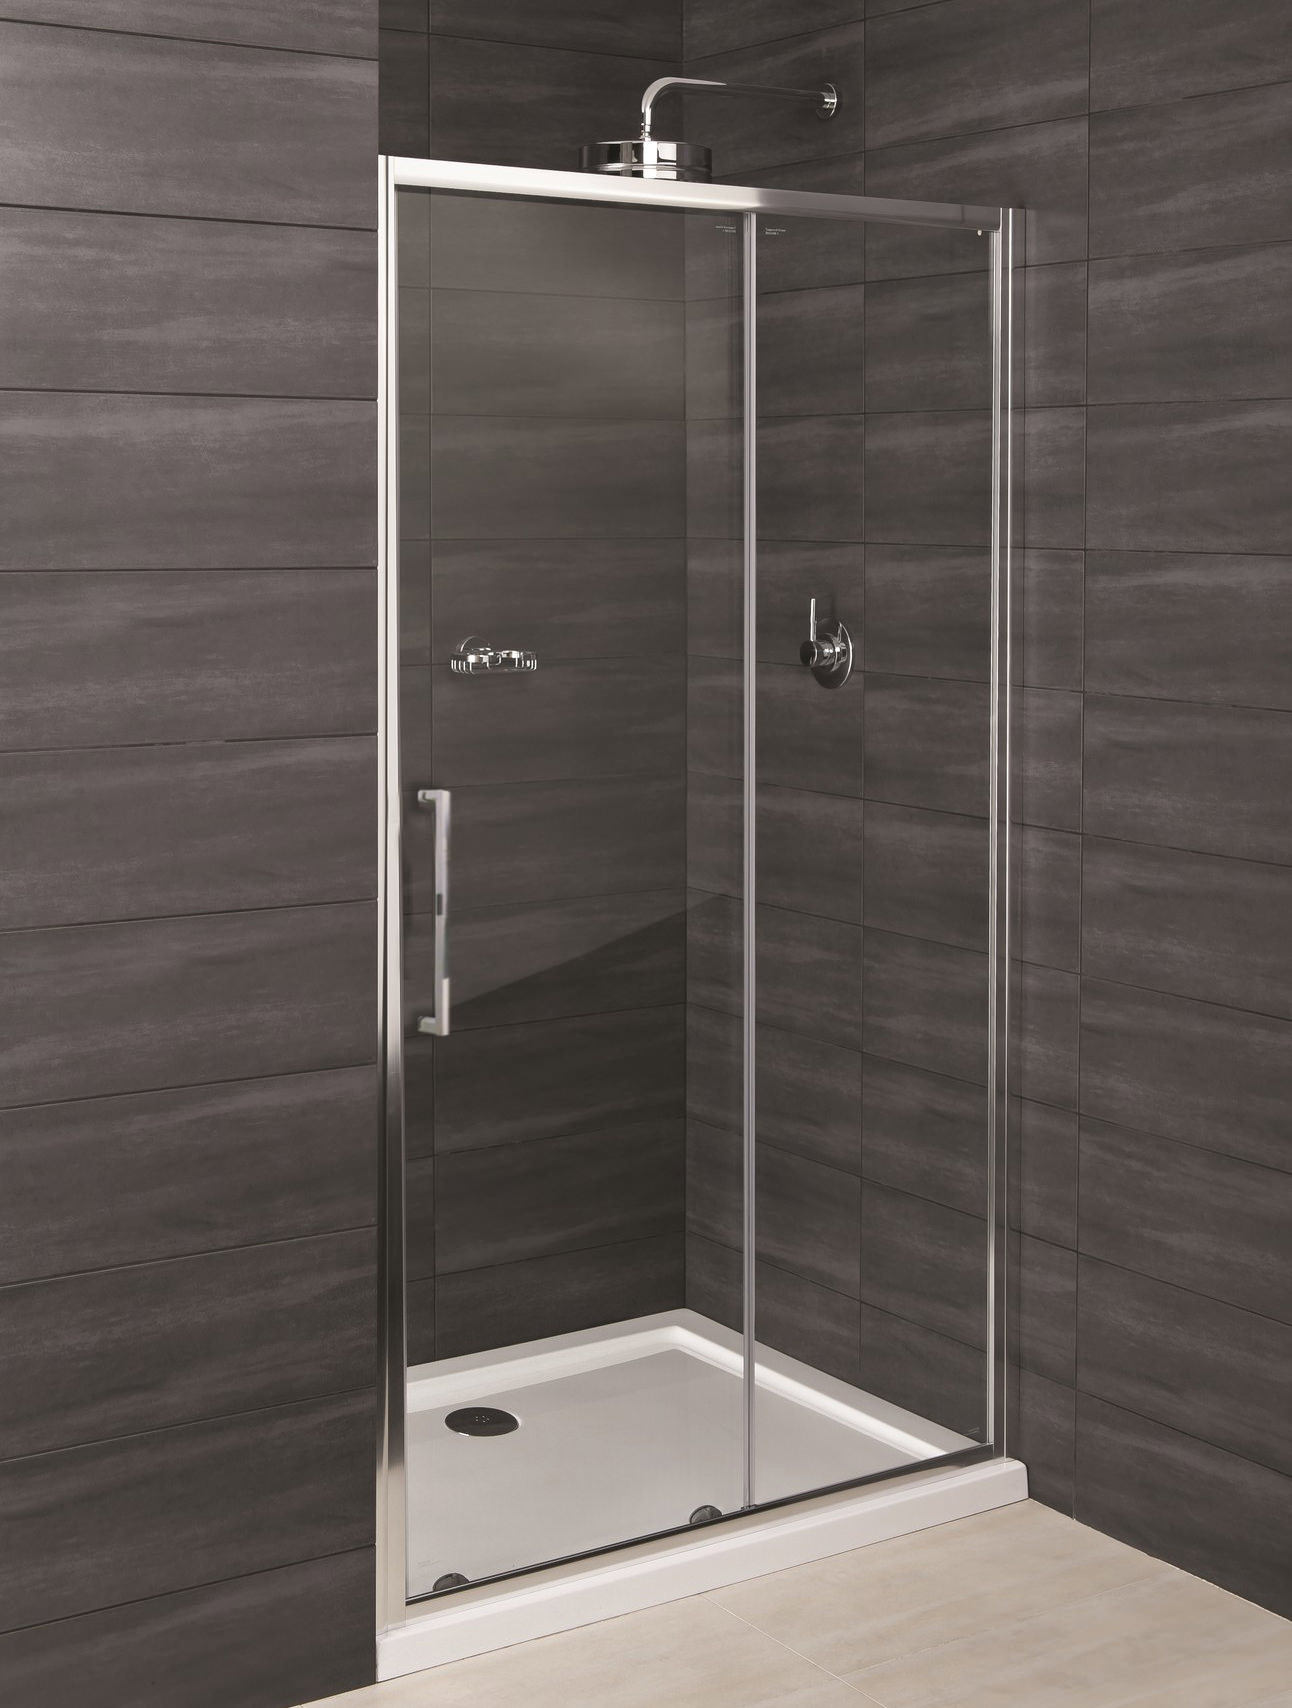 Rak Deluxe 8 Sliding Shower Enclosure Door 1400mm Rak8sl1400